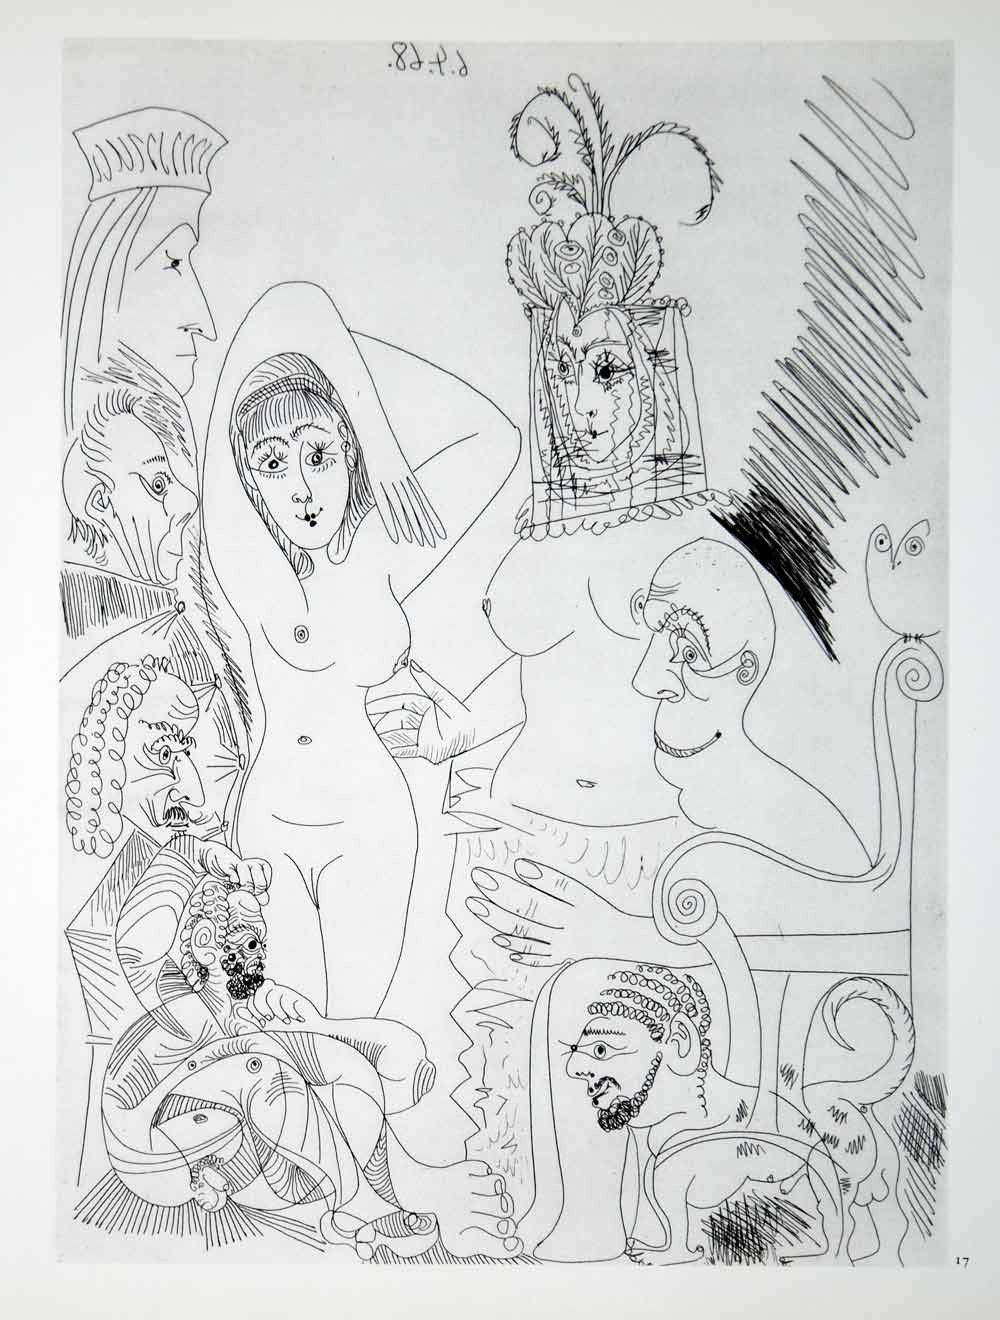 1970 Heliogravure Pablo Picasso Nudes Women Veil Faces Abstract Modern Art P347A